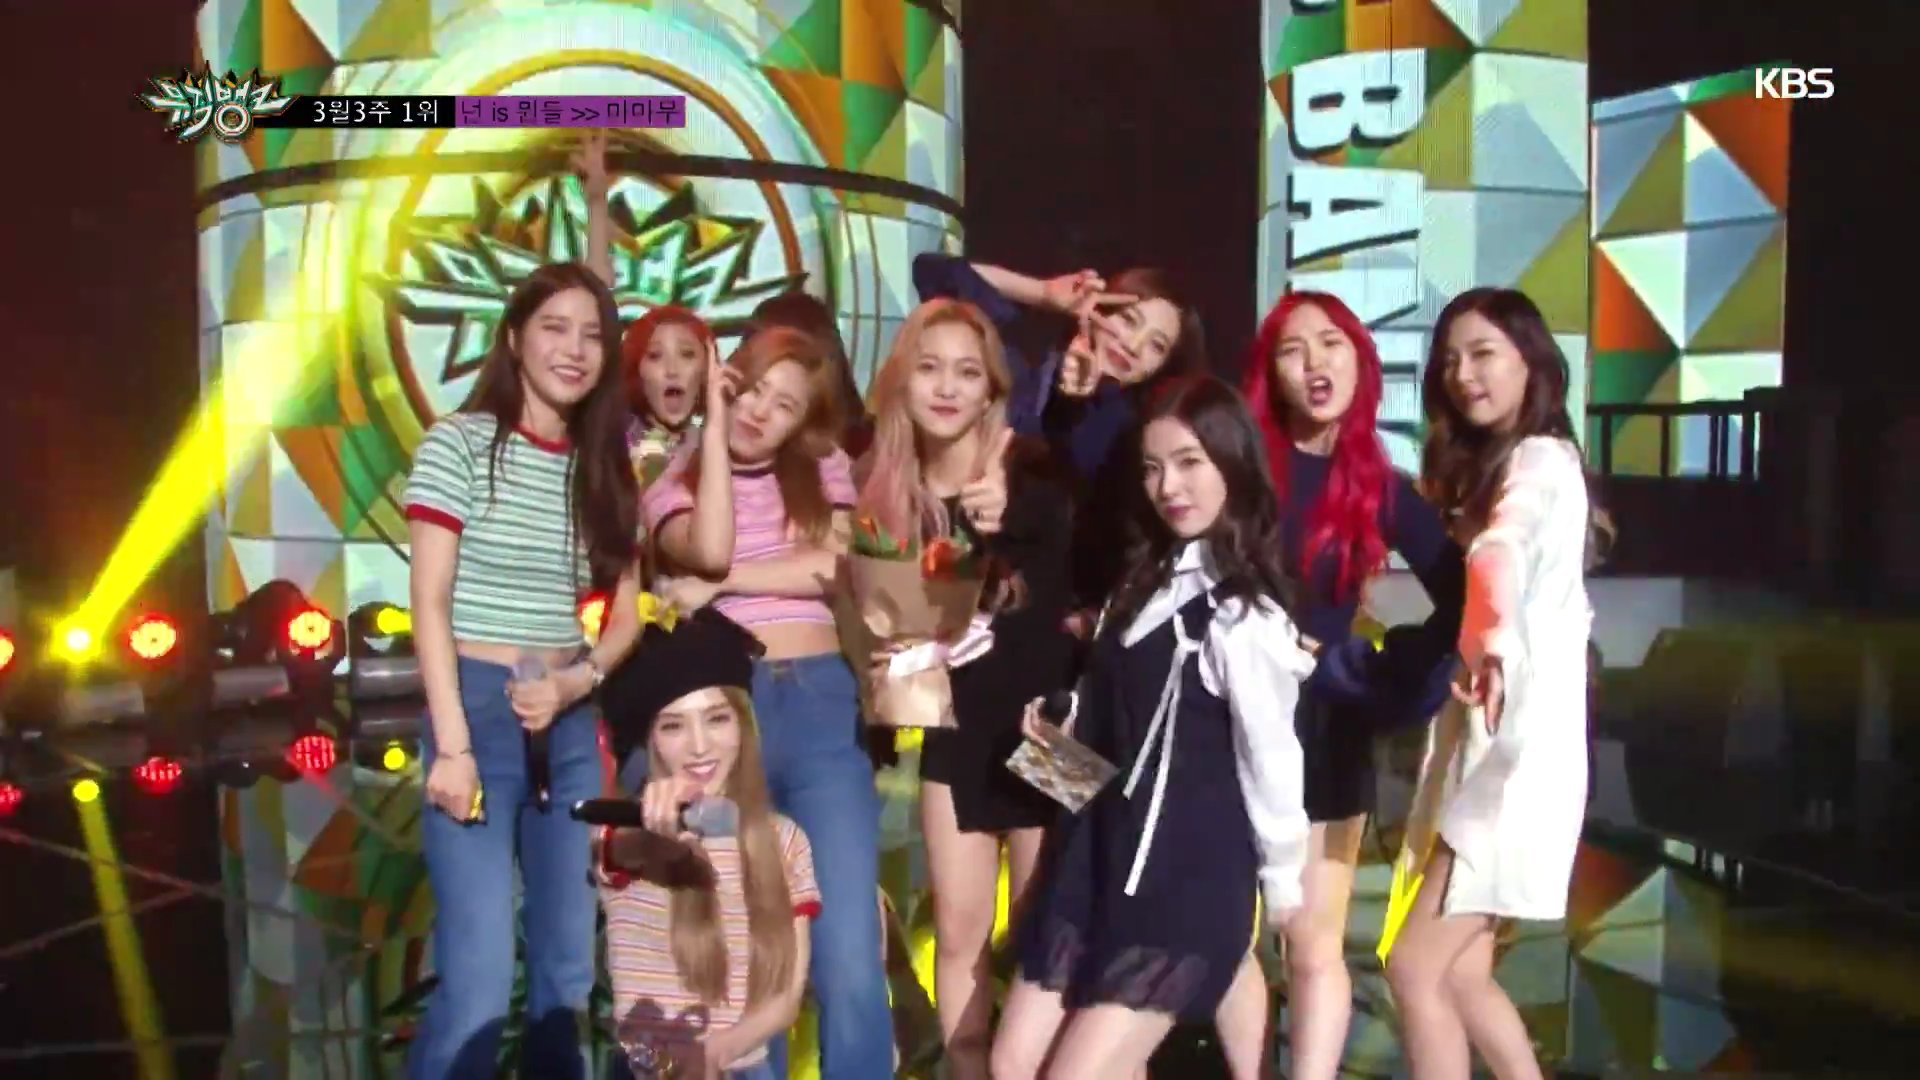 160318 Music Bank Encore feat  Mamamoo, Red Velvet and